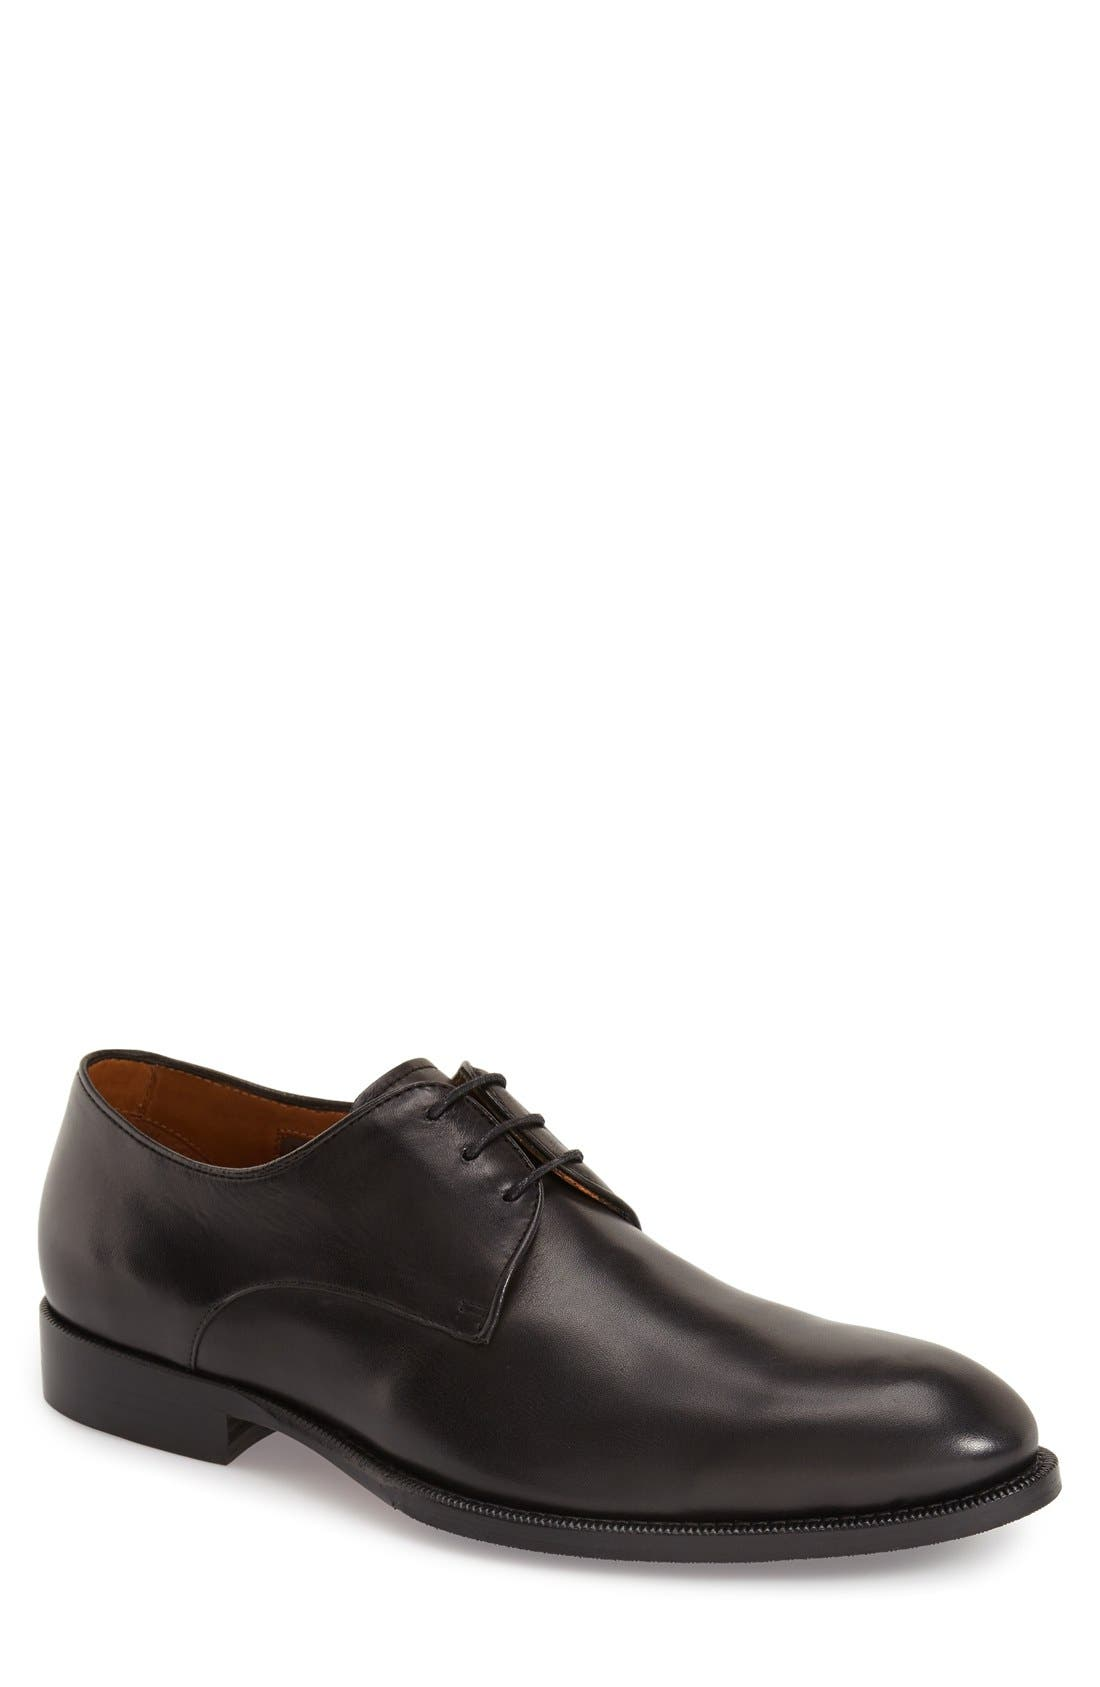 Main Image - Vince Camuto 'Brogan' Derby (Men)